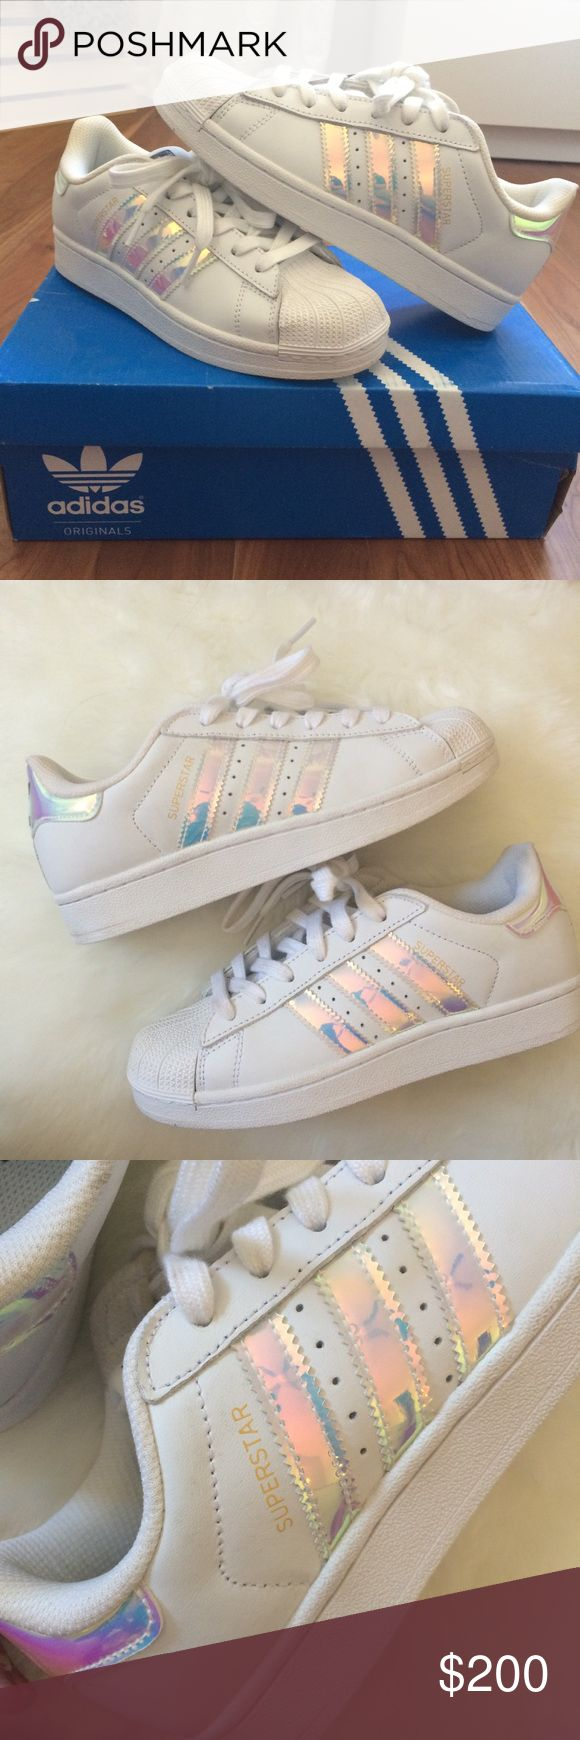 RARE Holographic Adidas SUPER RARE AND HARD TO FIND Holographic Adidas Superstars!!! 100% authentic. These are in a children's 4 which fits a 5.5 or a 6 in women's. These have NEVER BEEN WORN! I've stepped outside in them once but never actually worn them for a full day outside. These are in PERFECT condition. These are super hard to find and limited edition so they don't make them anymore. ✨✨✨✨💓 adidas Shoes Sneakers